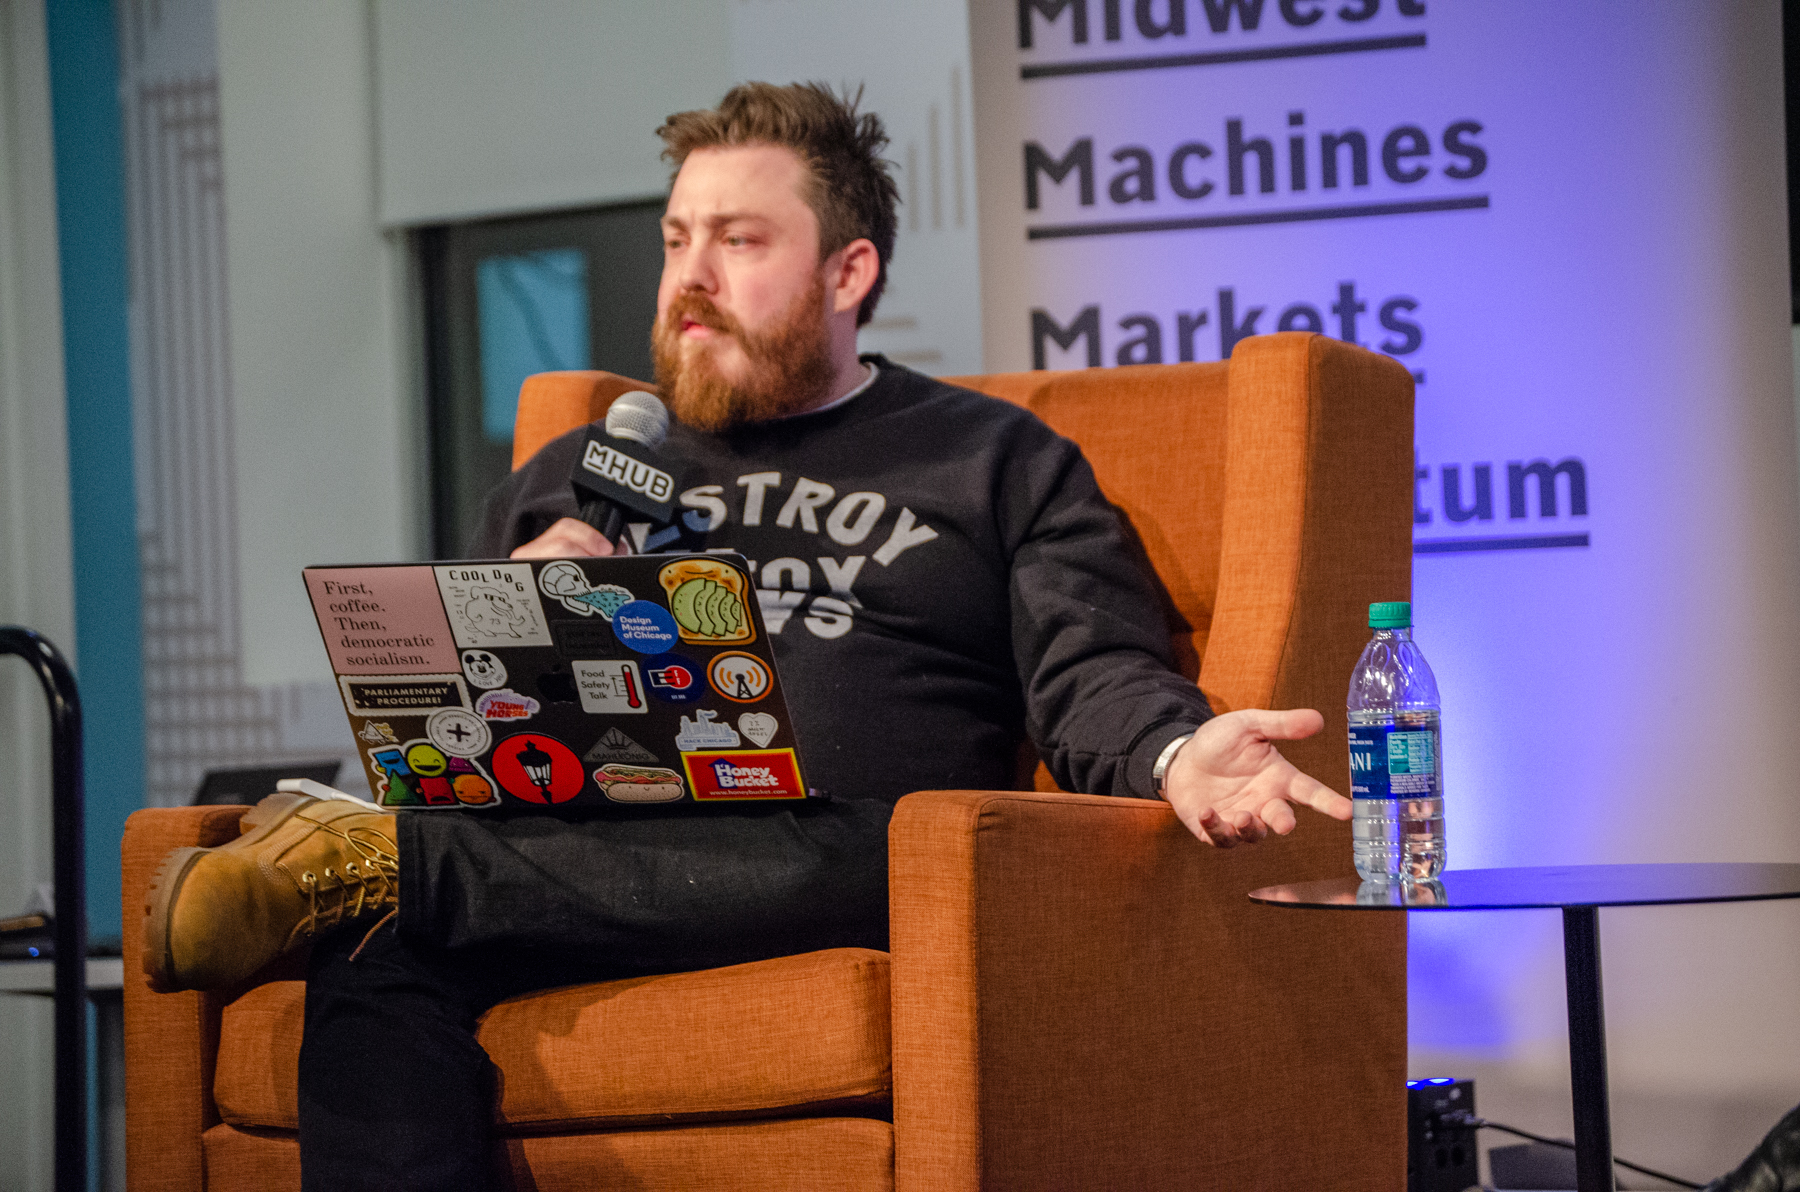 mHUB Industry Disruptors: Cards Against Humanity's Max Temkin